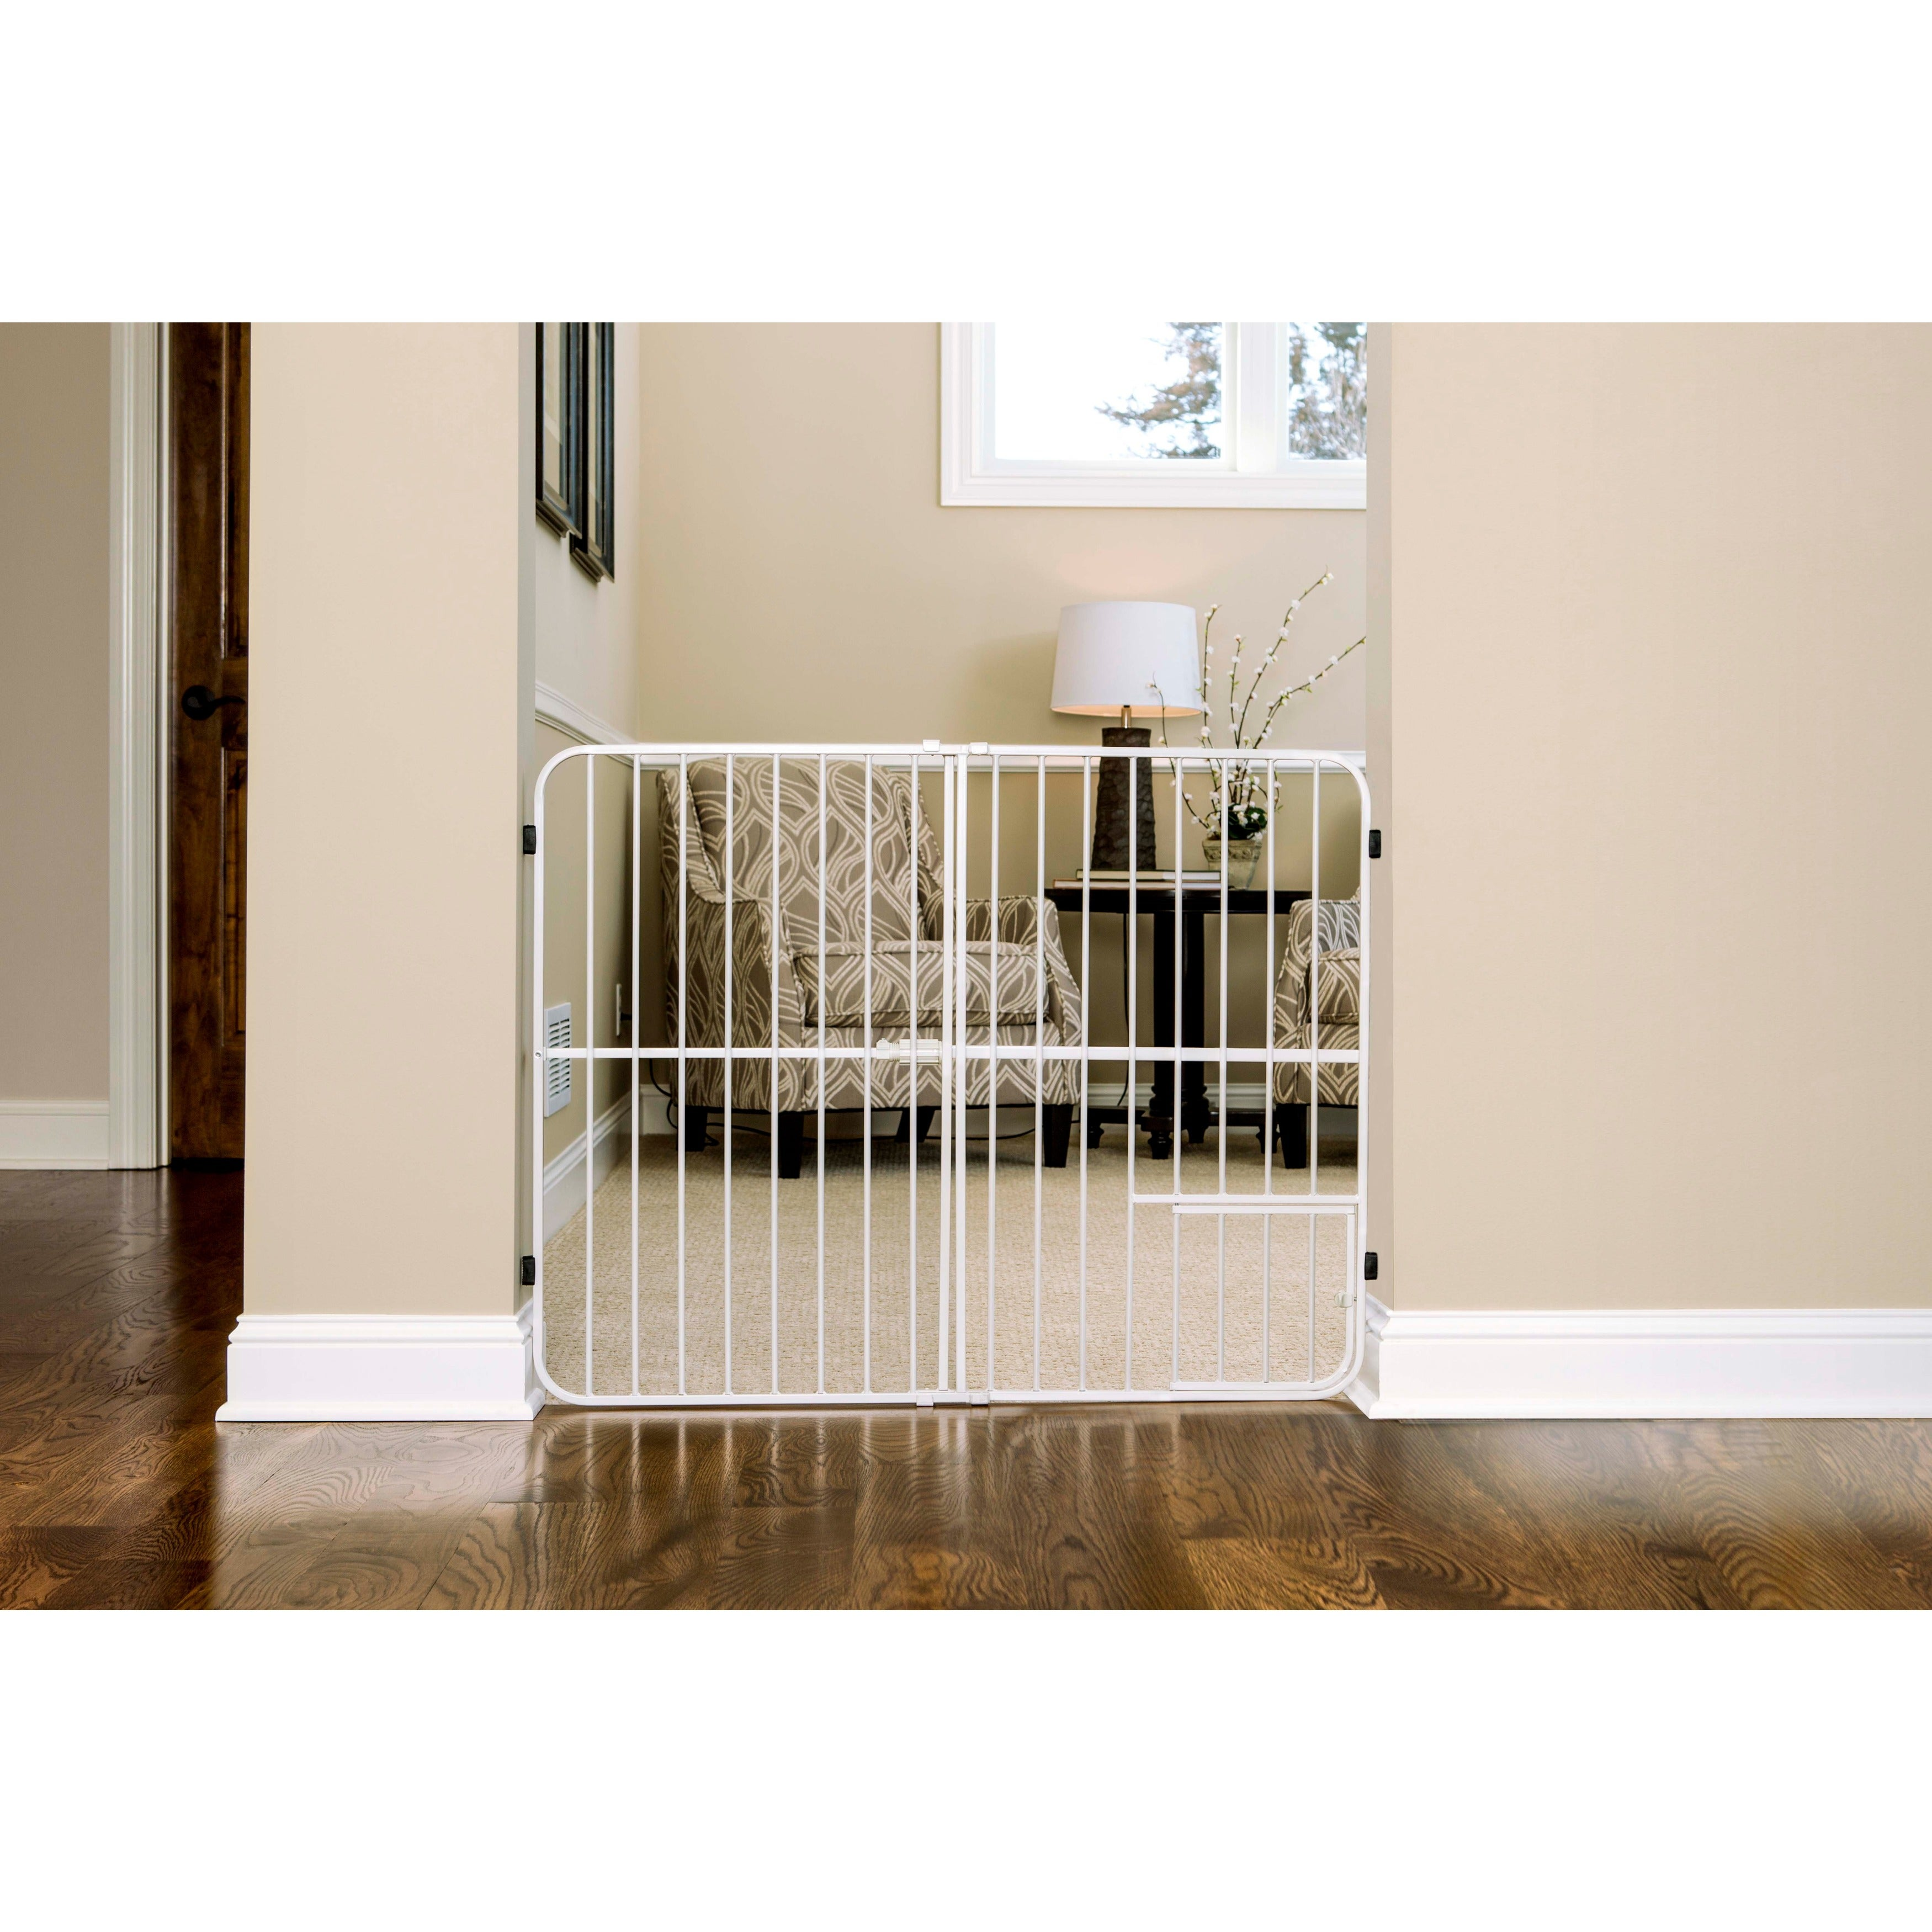 Carlson 3 Panel Freestanding Extra Tall Wood Cat And Dog Gate